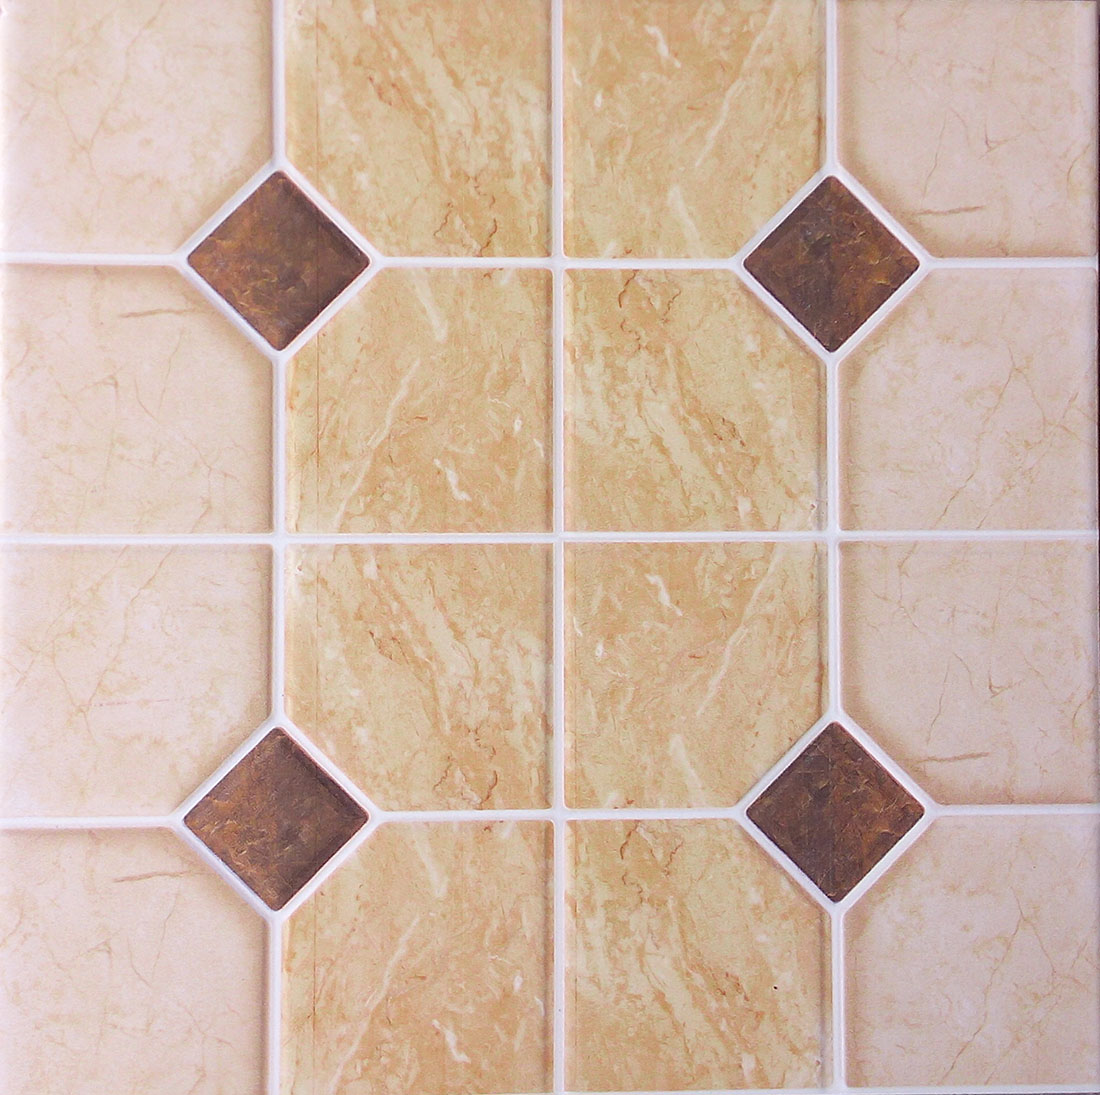 Awe Inspiring 30 X 30 Kitchen And Bathroom Floor Tile Home Interior And Landscaping Ologienasavecom